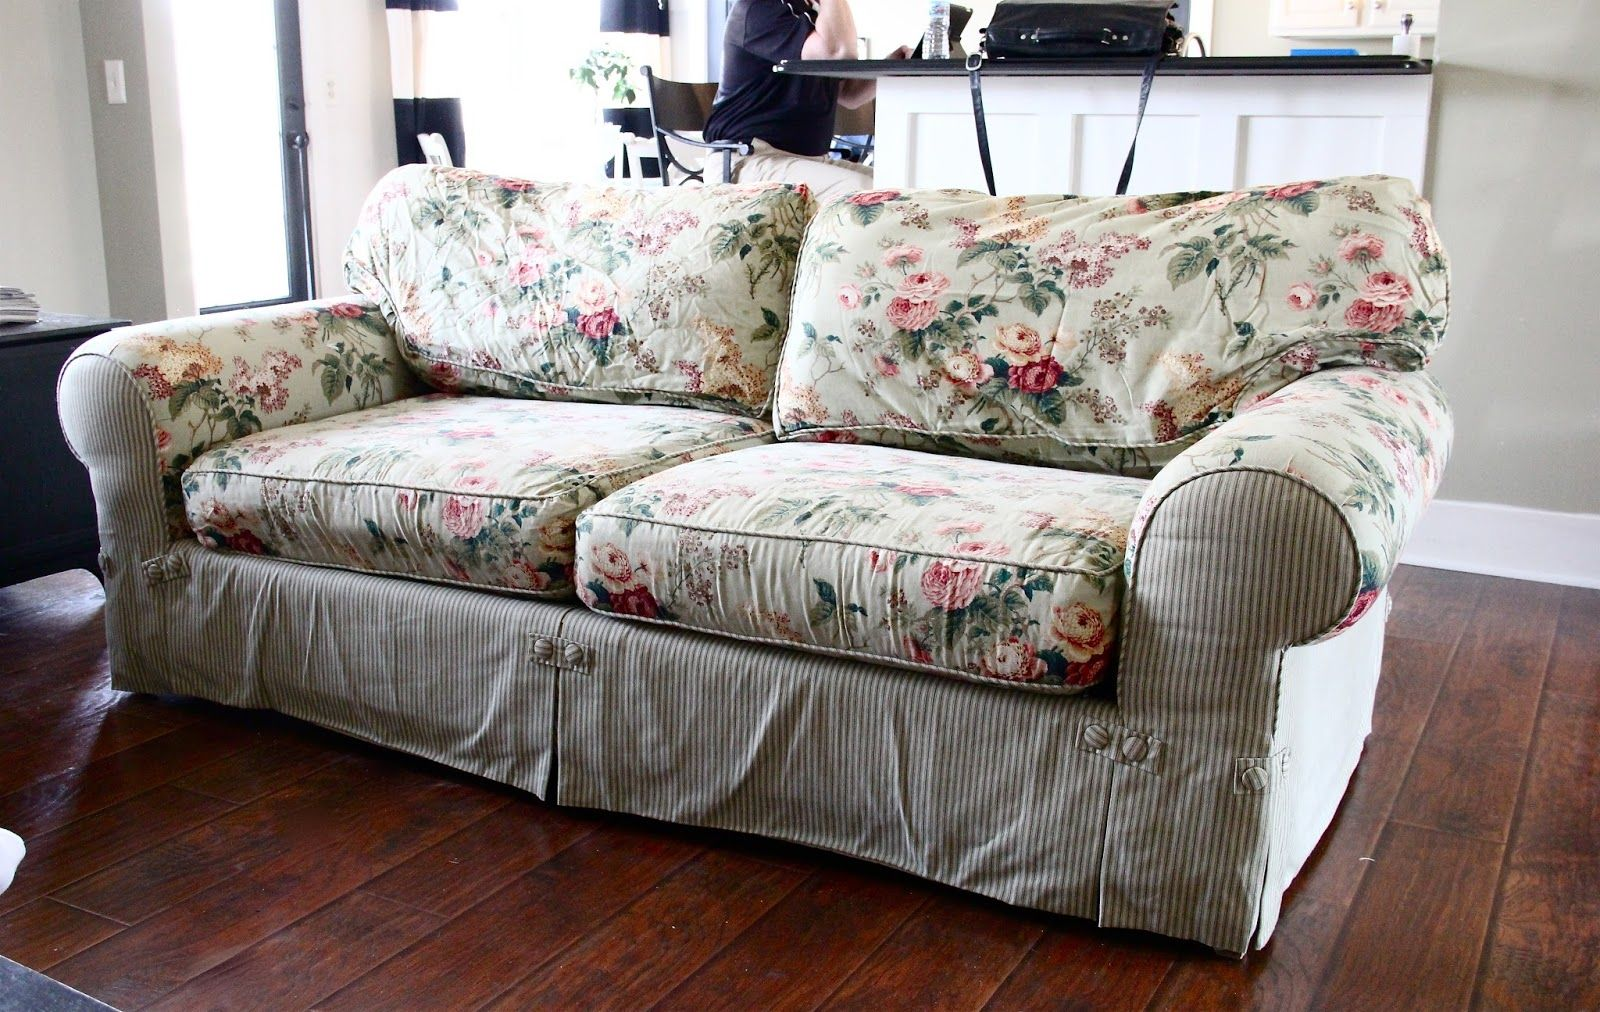 The Yellow Cape Cod Ten Year Old Sofa Makeover Sofa Makeover Classic Sofa Bed Old Sofa